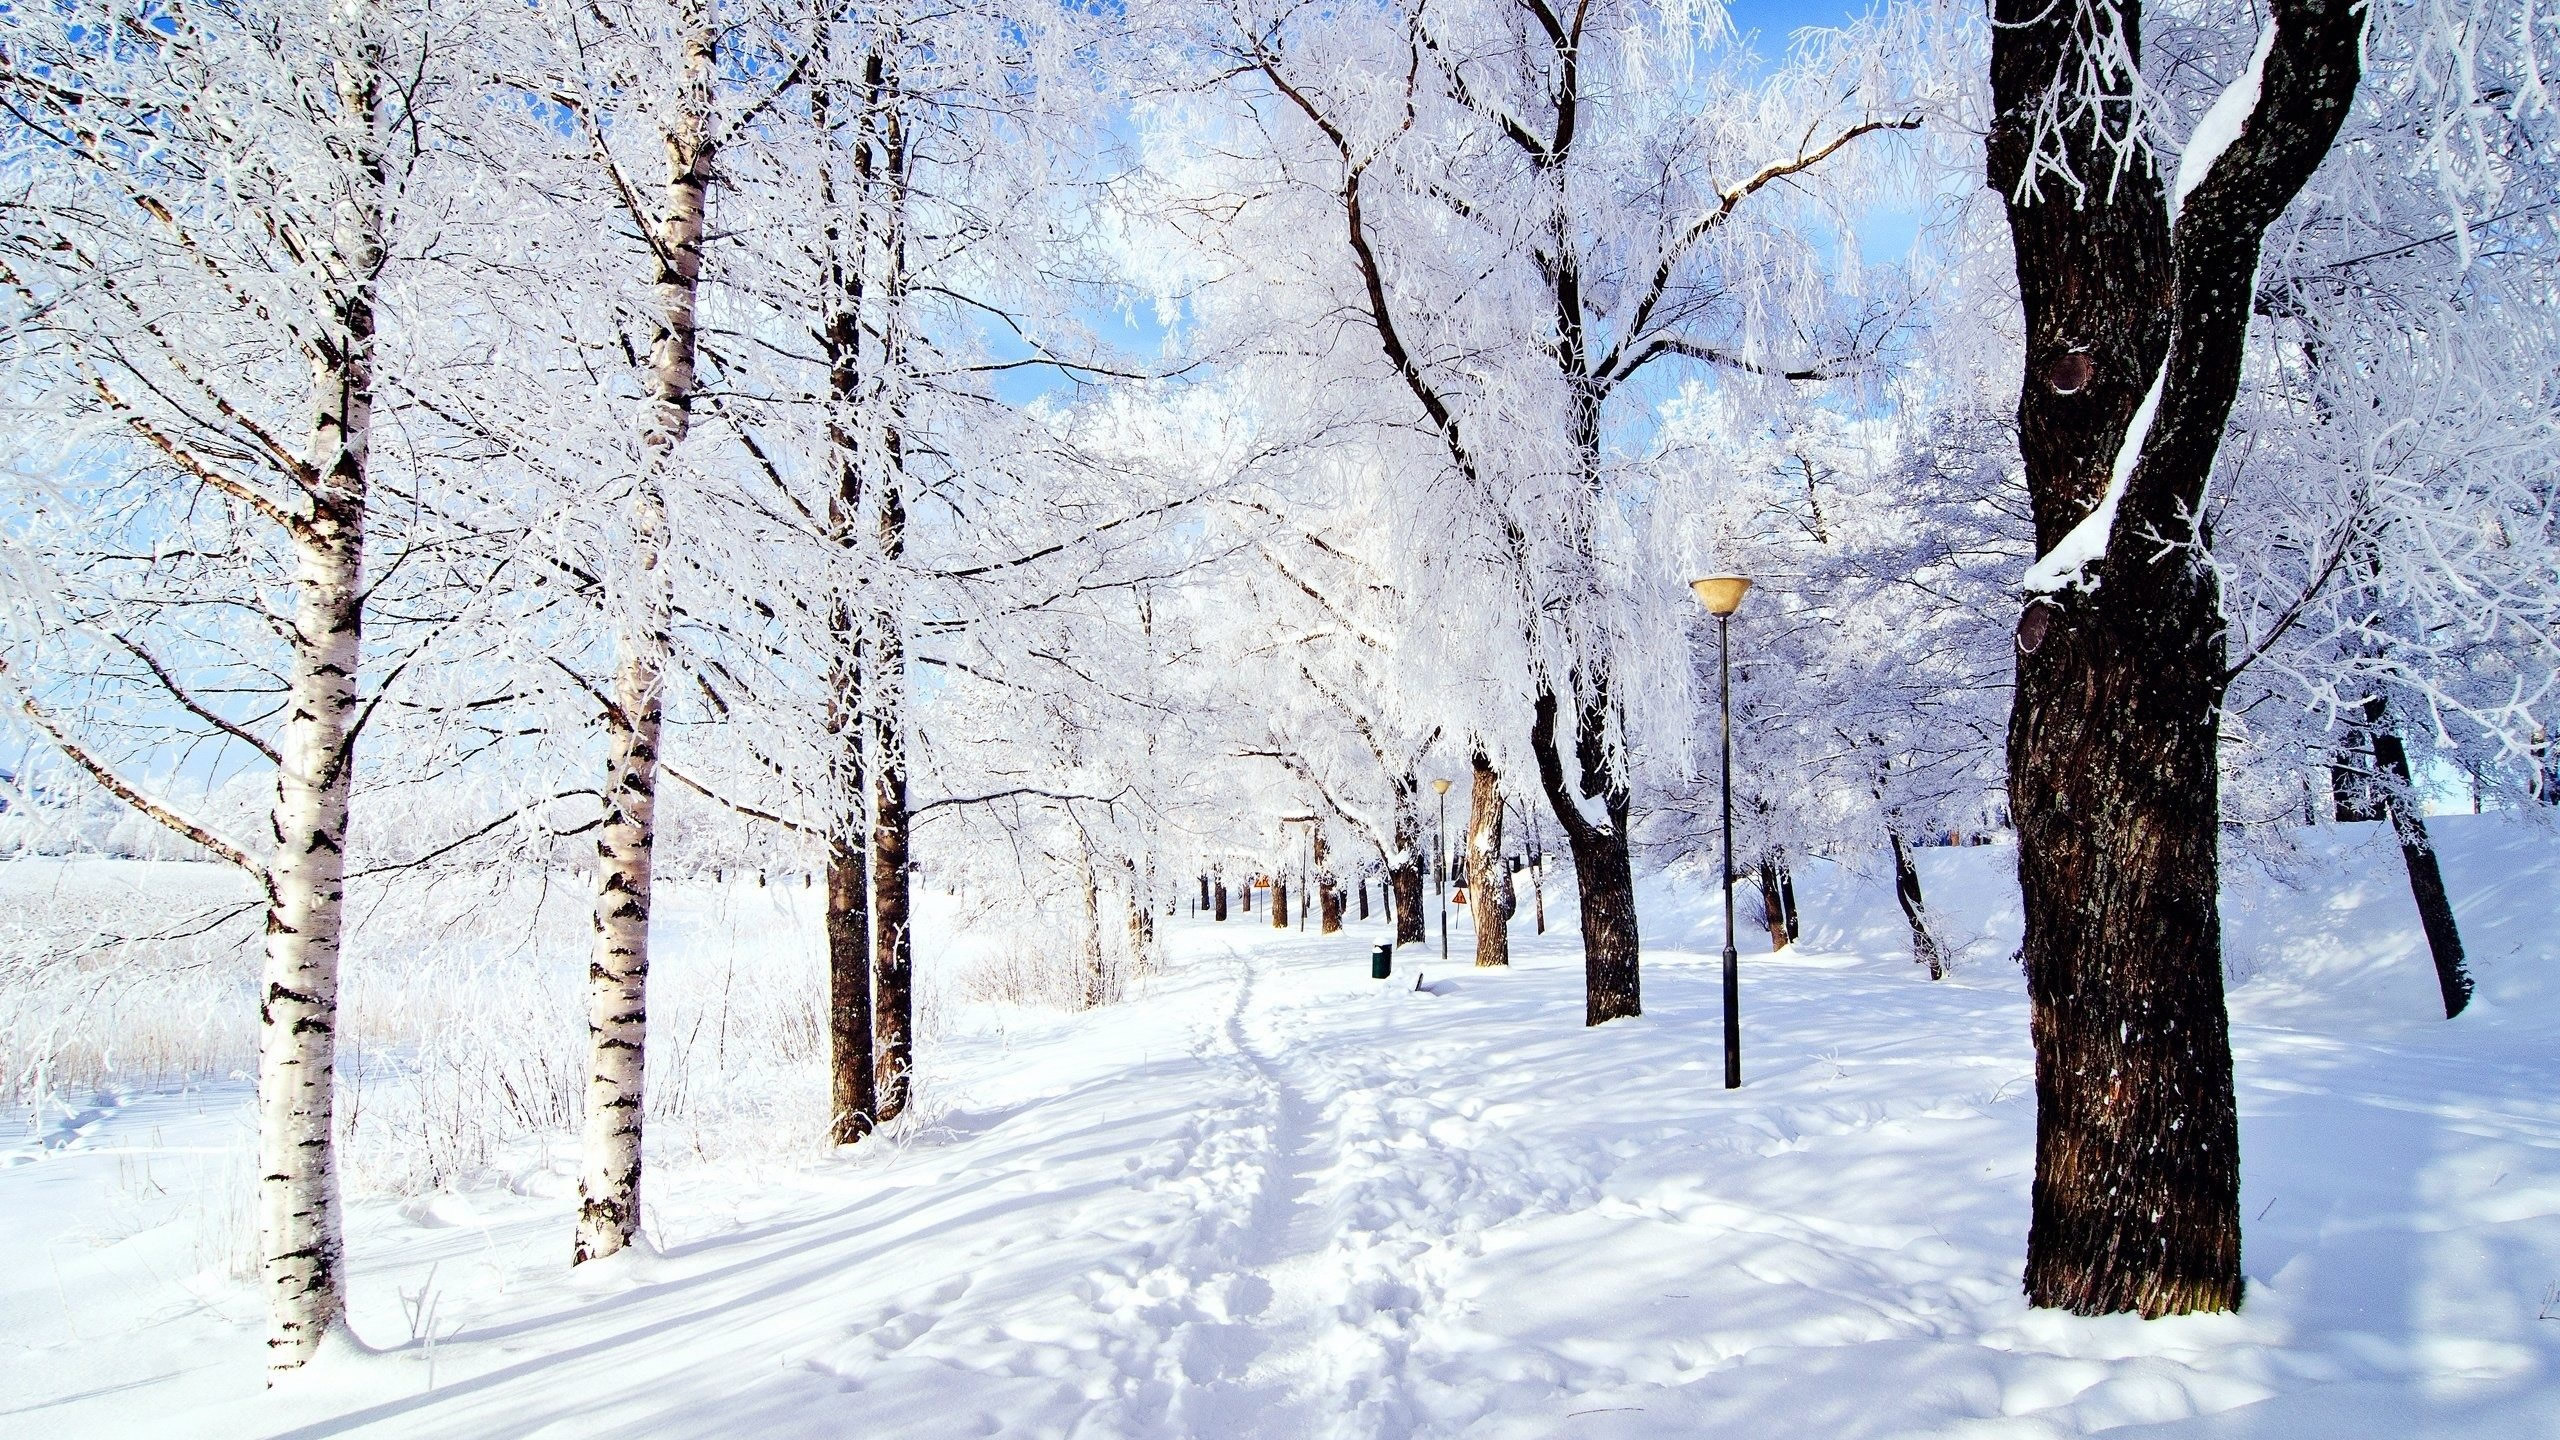 Free Snowy Woods Cliparts, Download Free Clip Art, Free Clip.